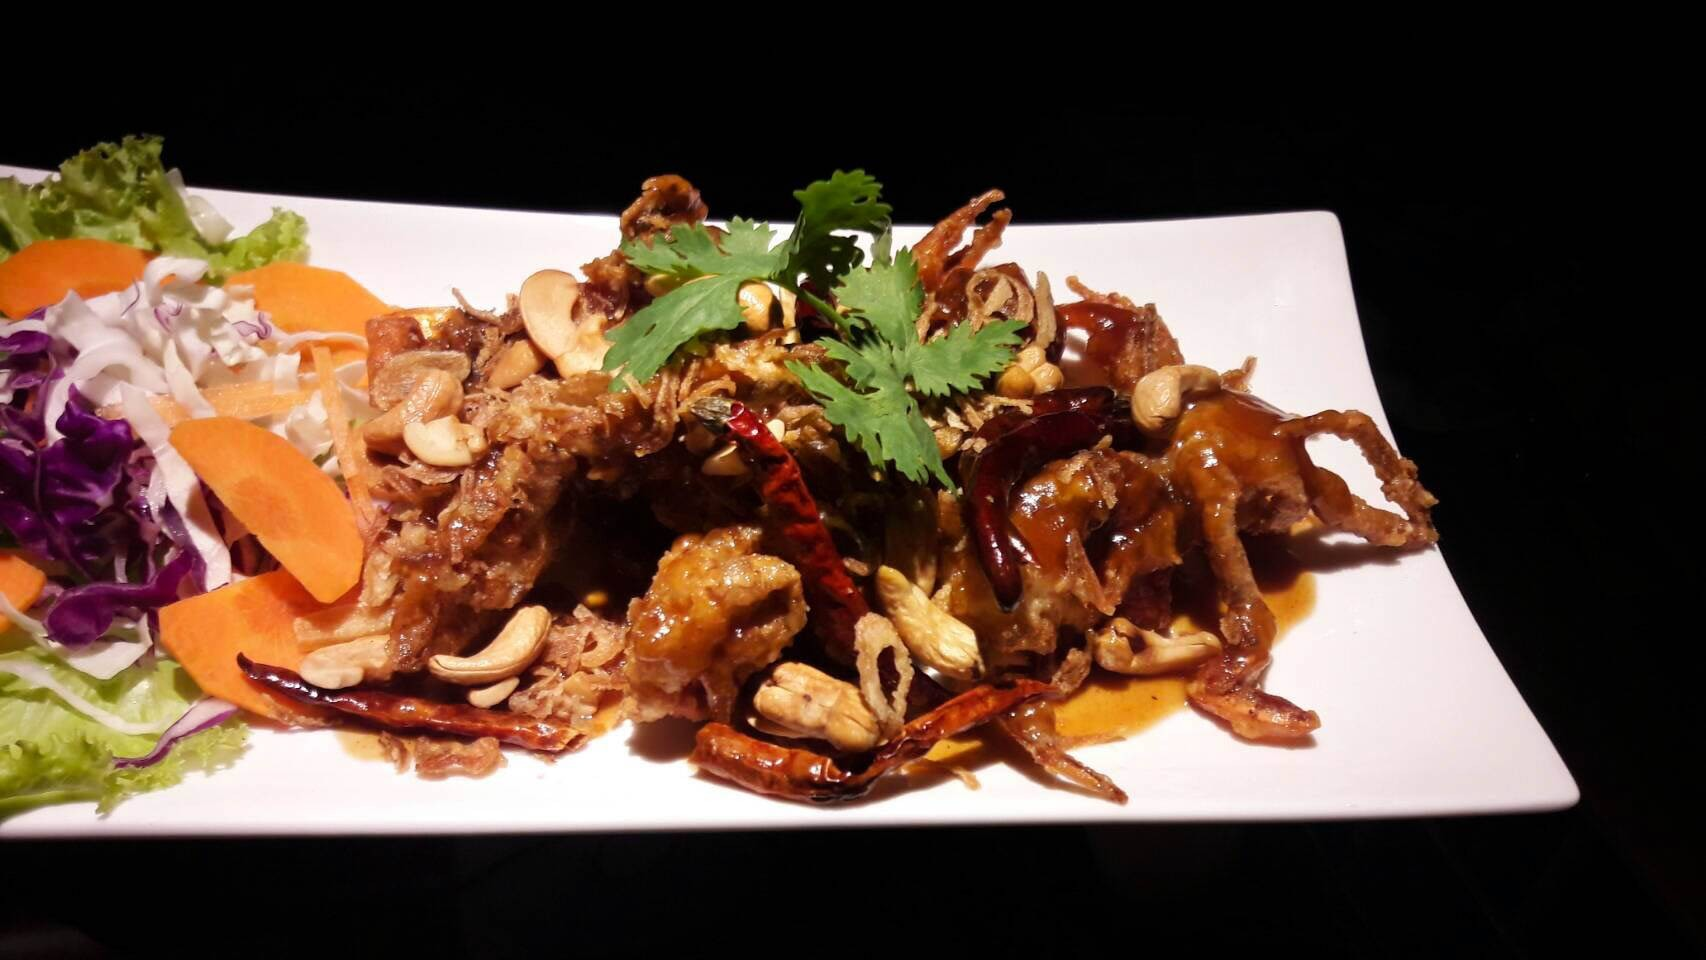 Soft-shell crab with tamarind sauce